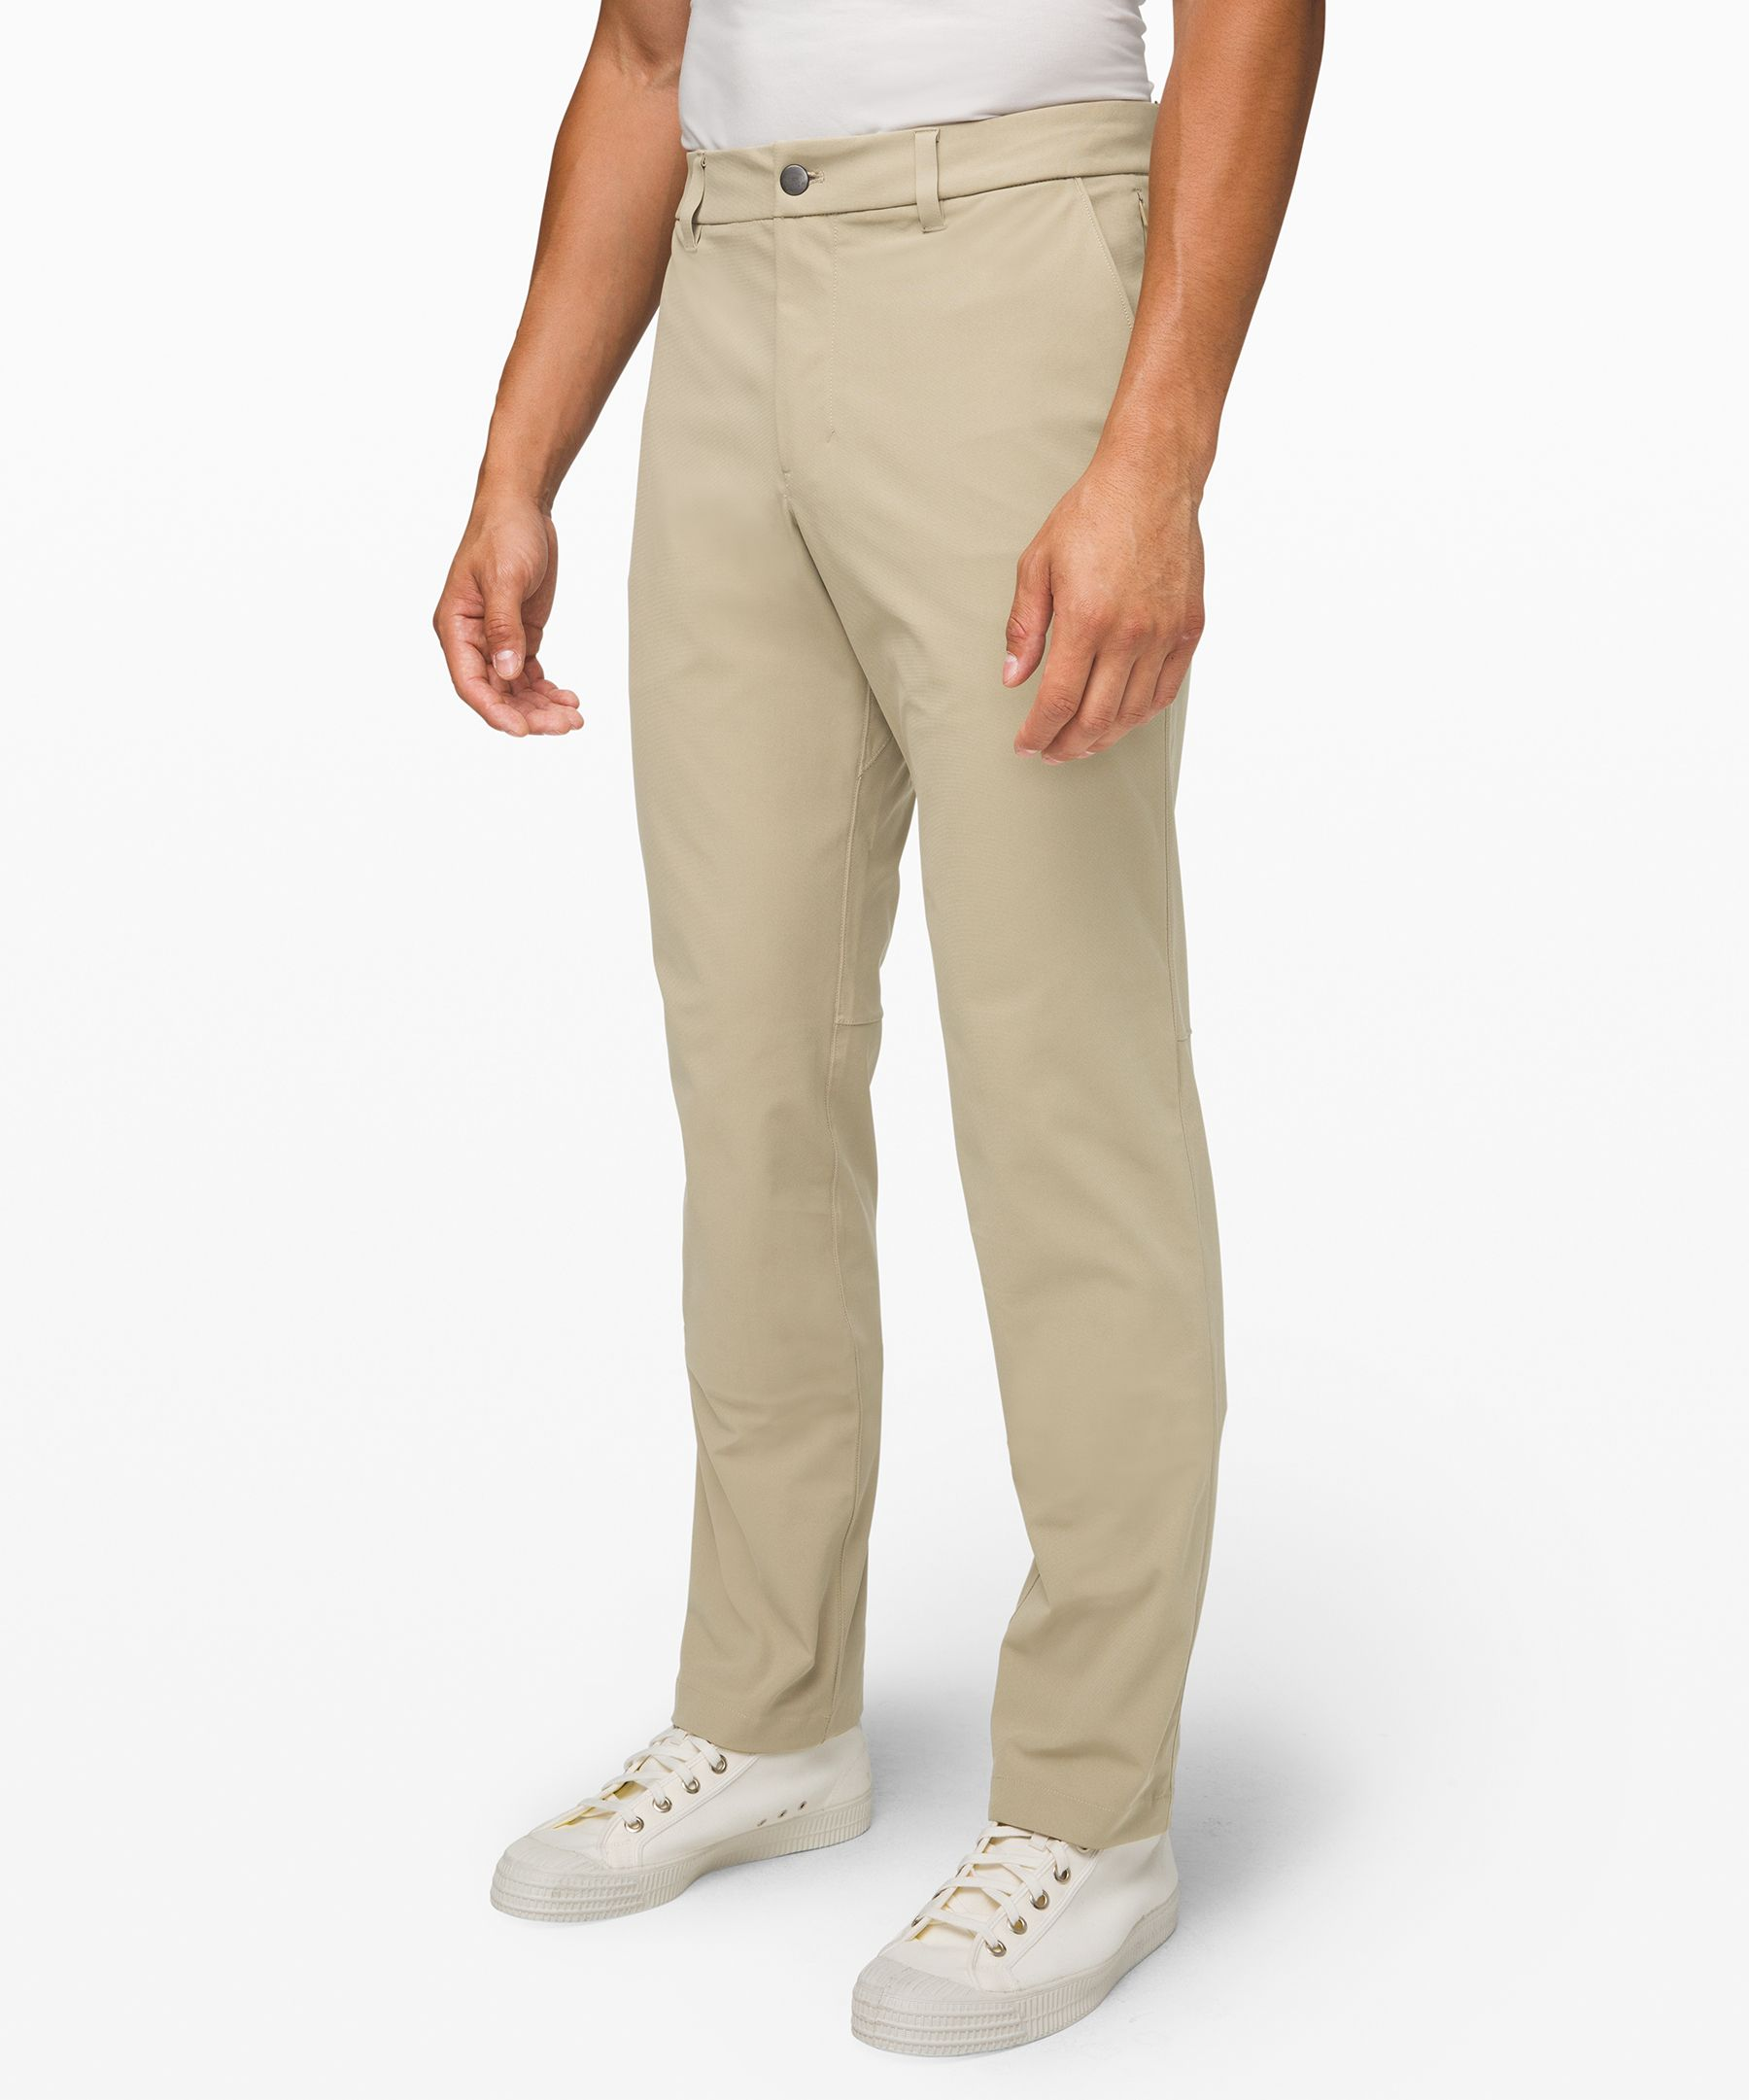 Commission Pant Relaxed Online Only Warpstreme 34